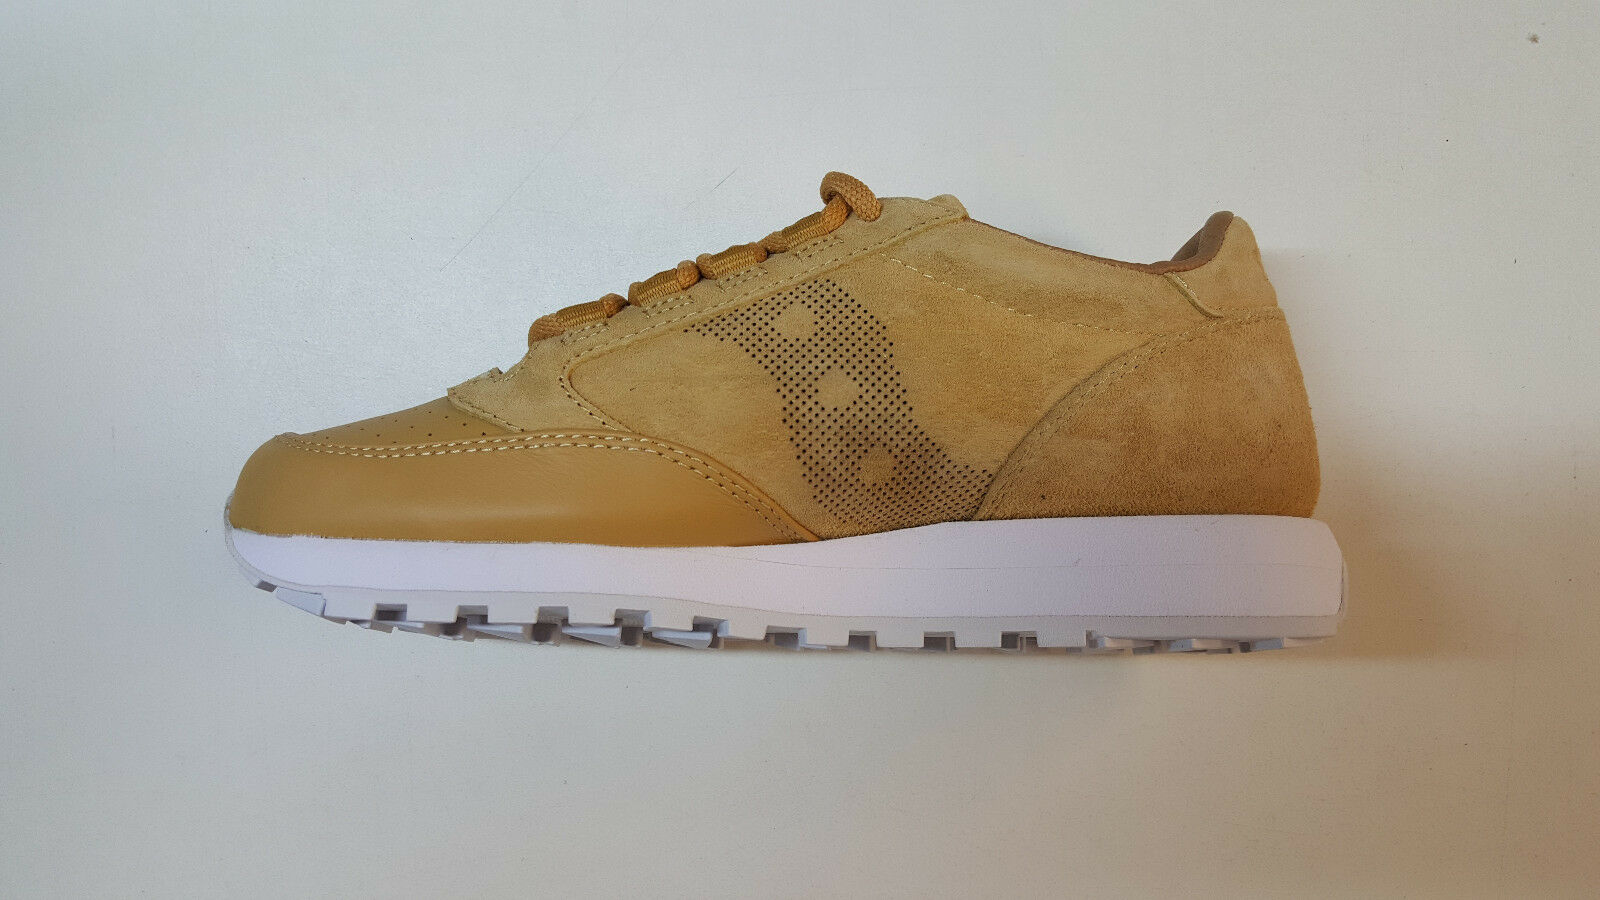 SAUCONY JAZZ ORIGINAL 35TH ANNIVERSARY LUX WHEAT LEATHER SUEDE MENS S70264-2